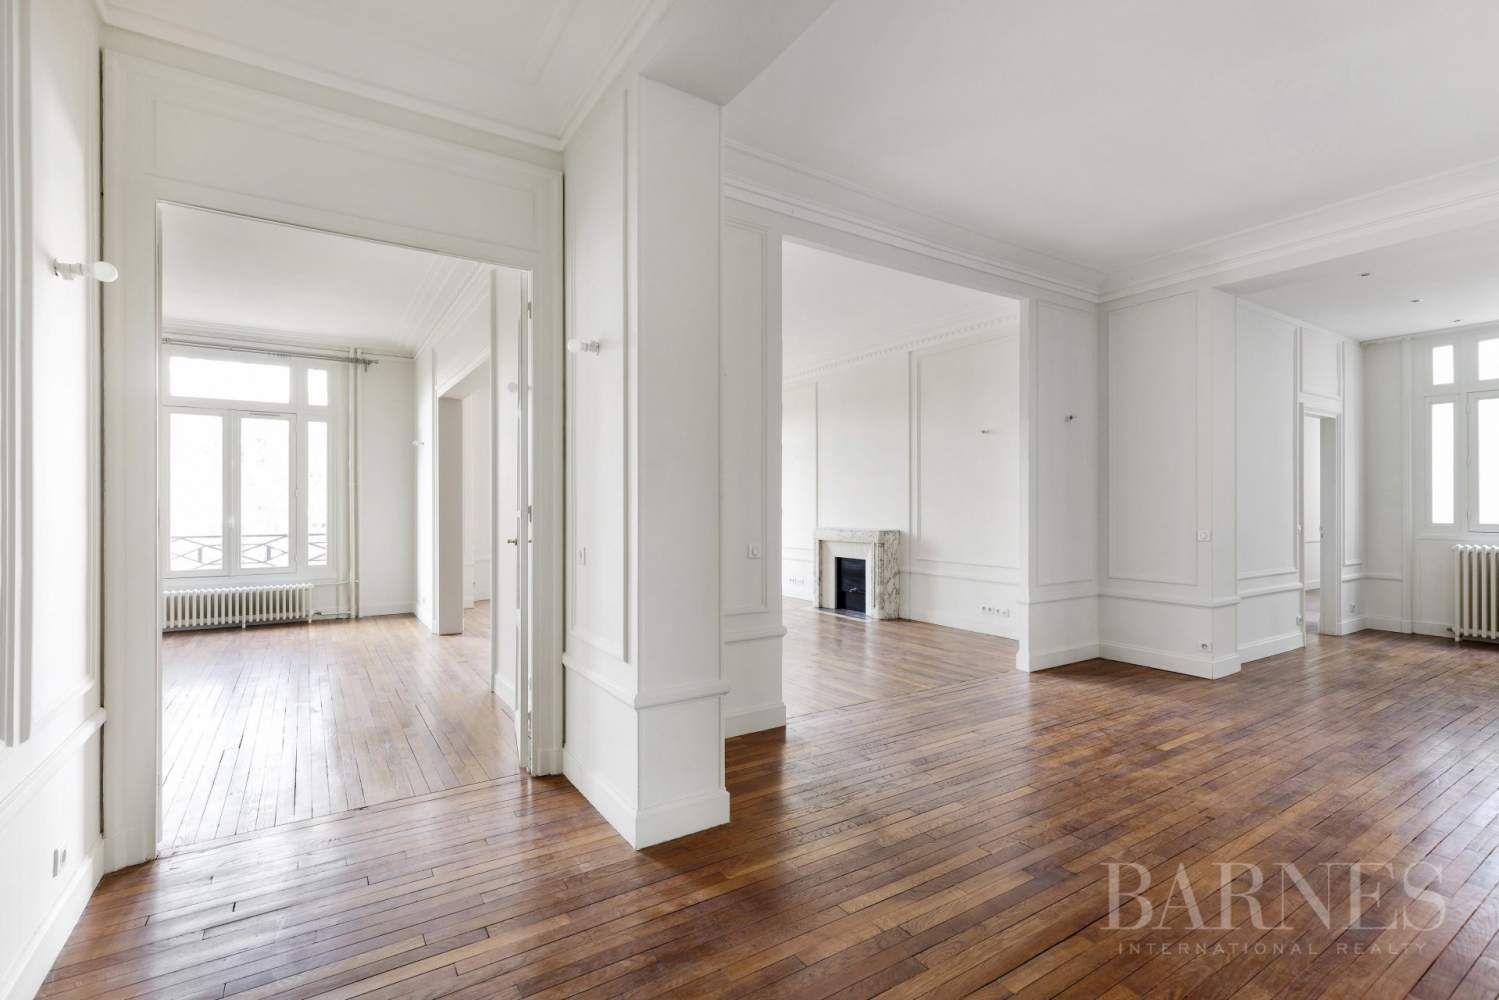 EXCLUSIVE - 8-ROOM APARTMENT FOR SALE - RENOVATED 1930s BUILDING - NEUILLY/PASTEUR picture 14